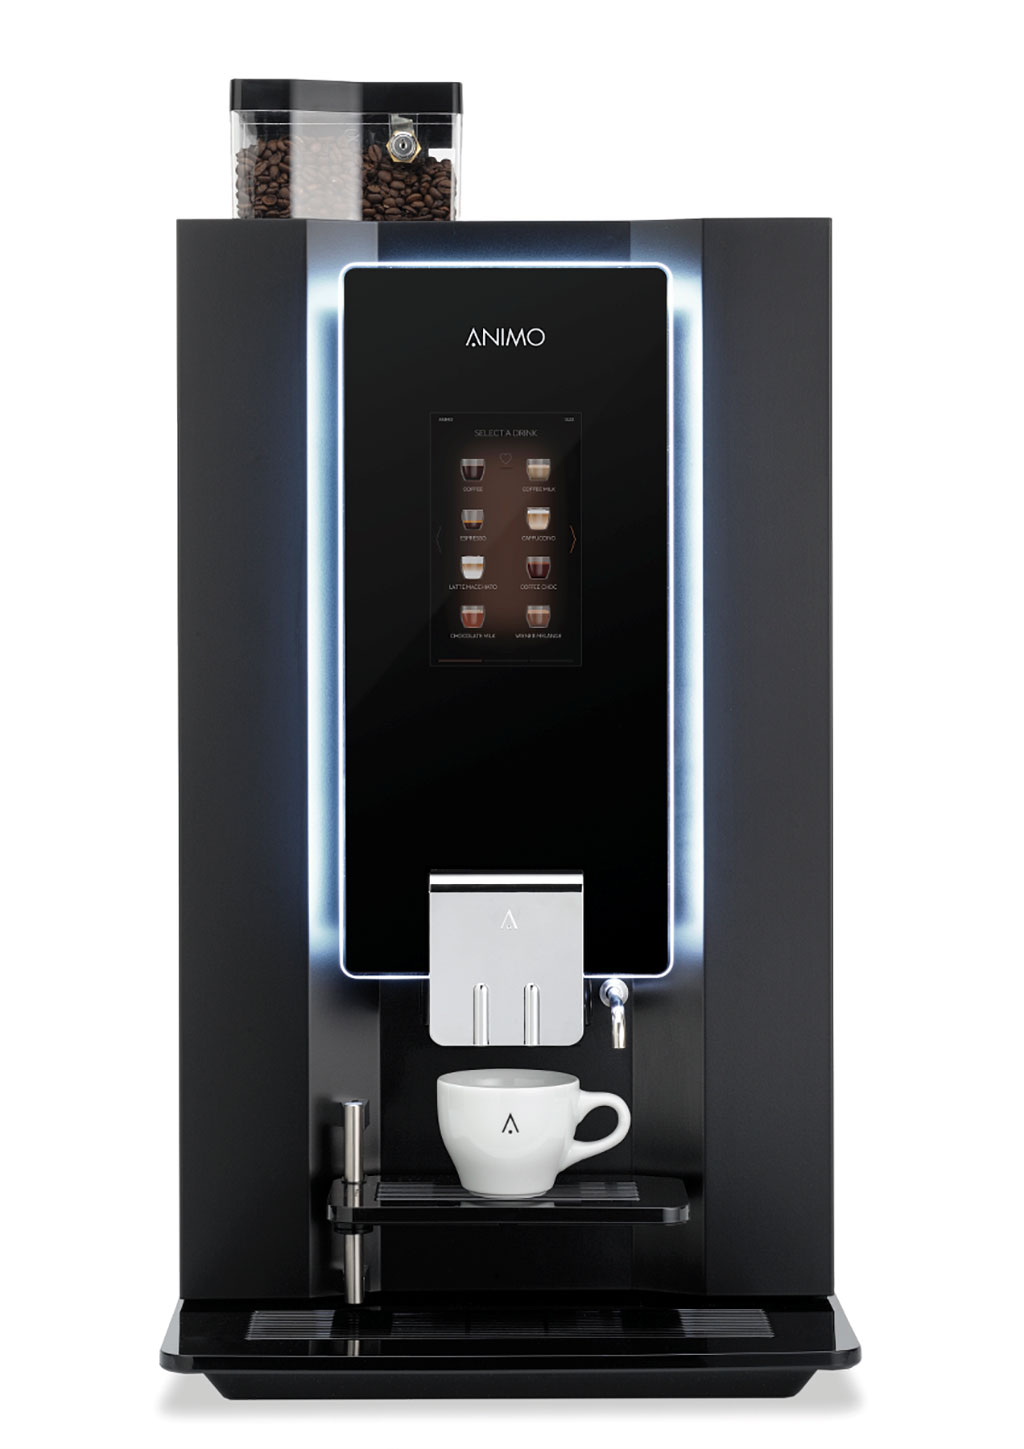 OptiBean Kaffeeautomat von Animo